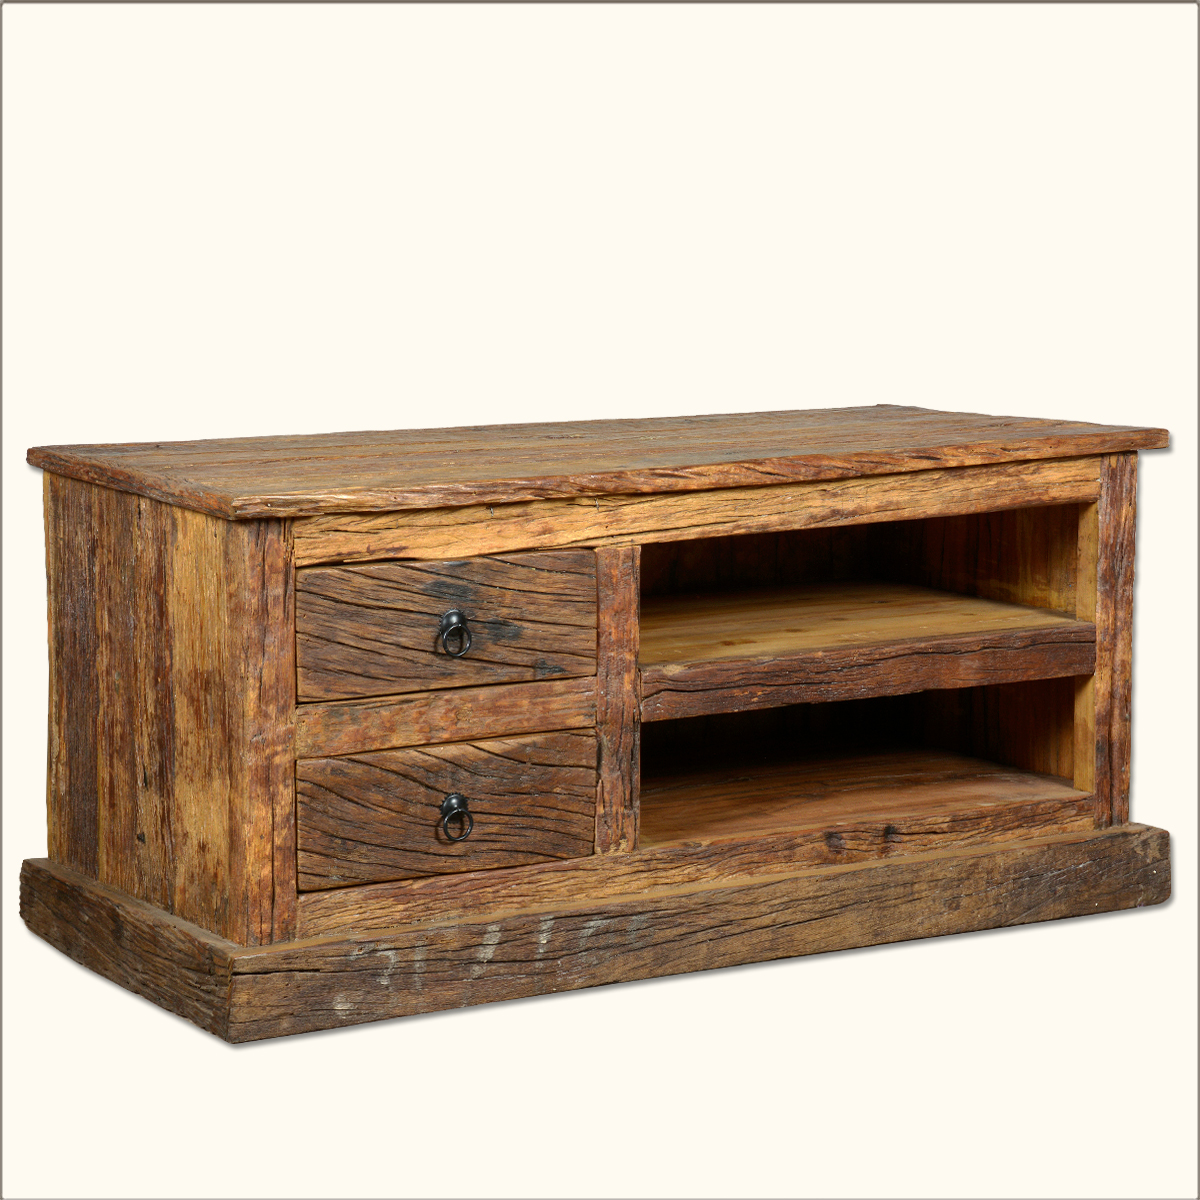 Reclaimed Wood Rustic Railroad Ties Tv Stand Media Console